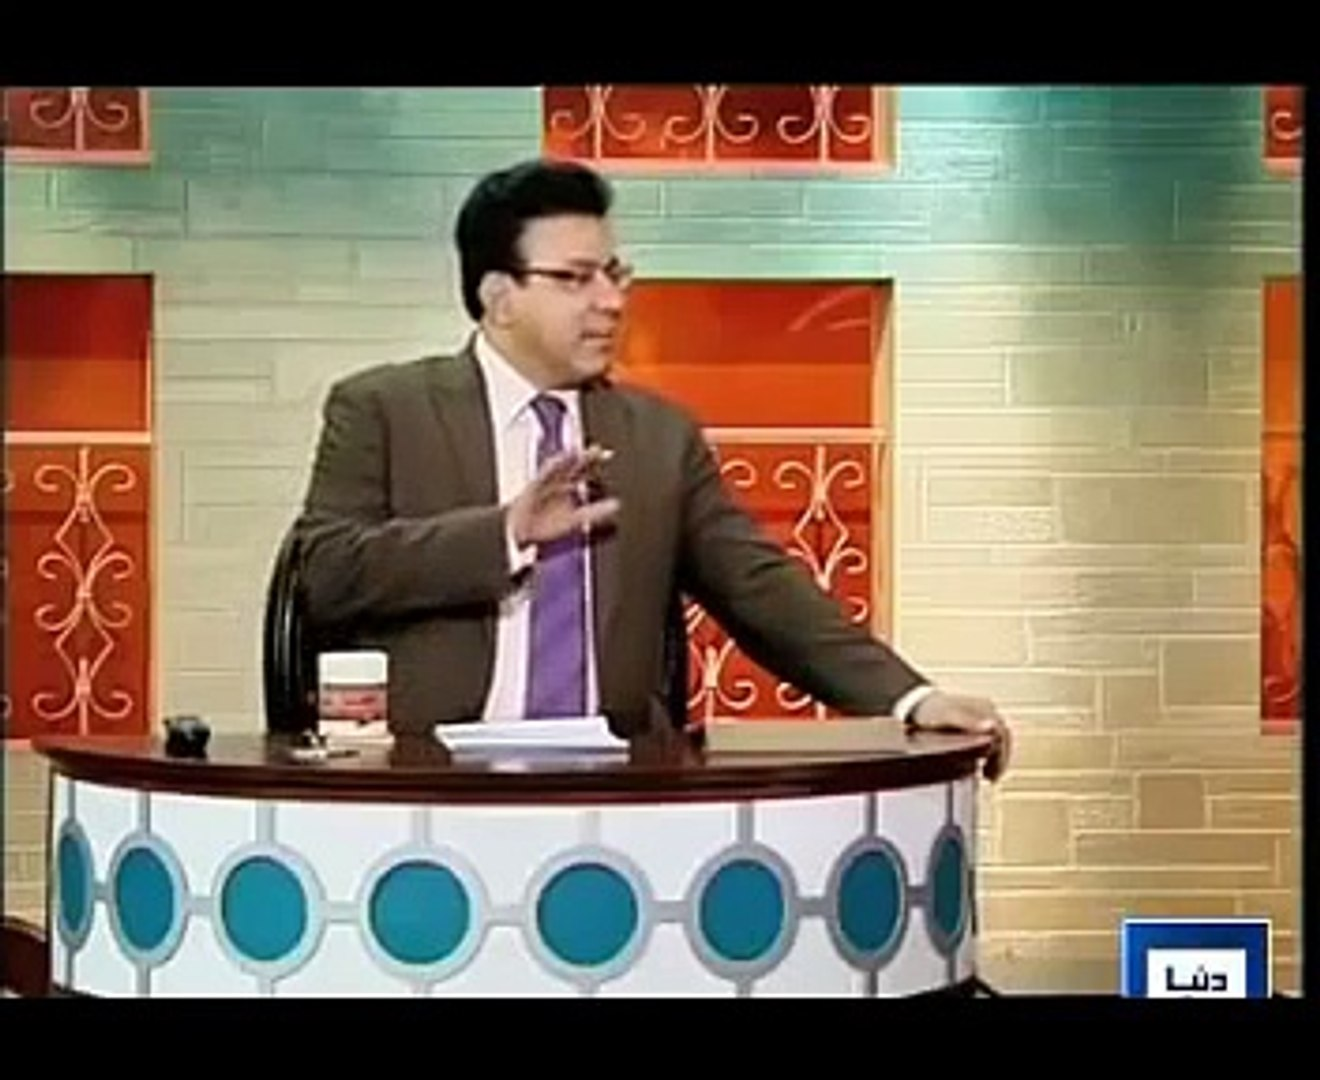 Most comedy and funny show clip for pakistani actresses and actors